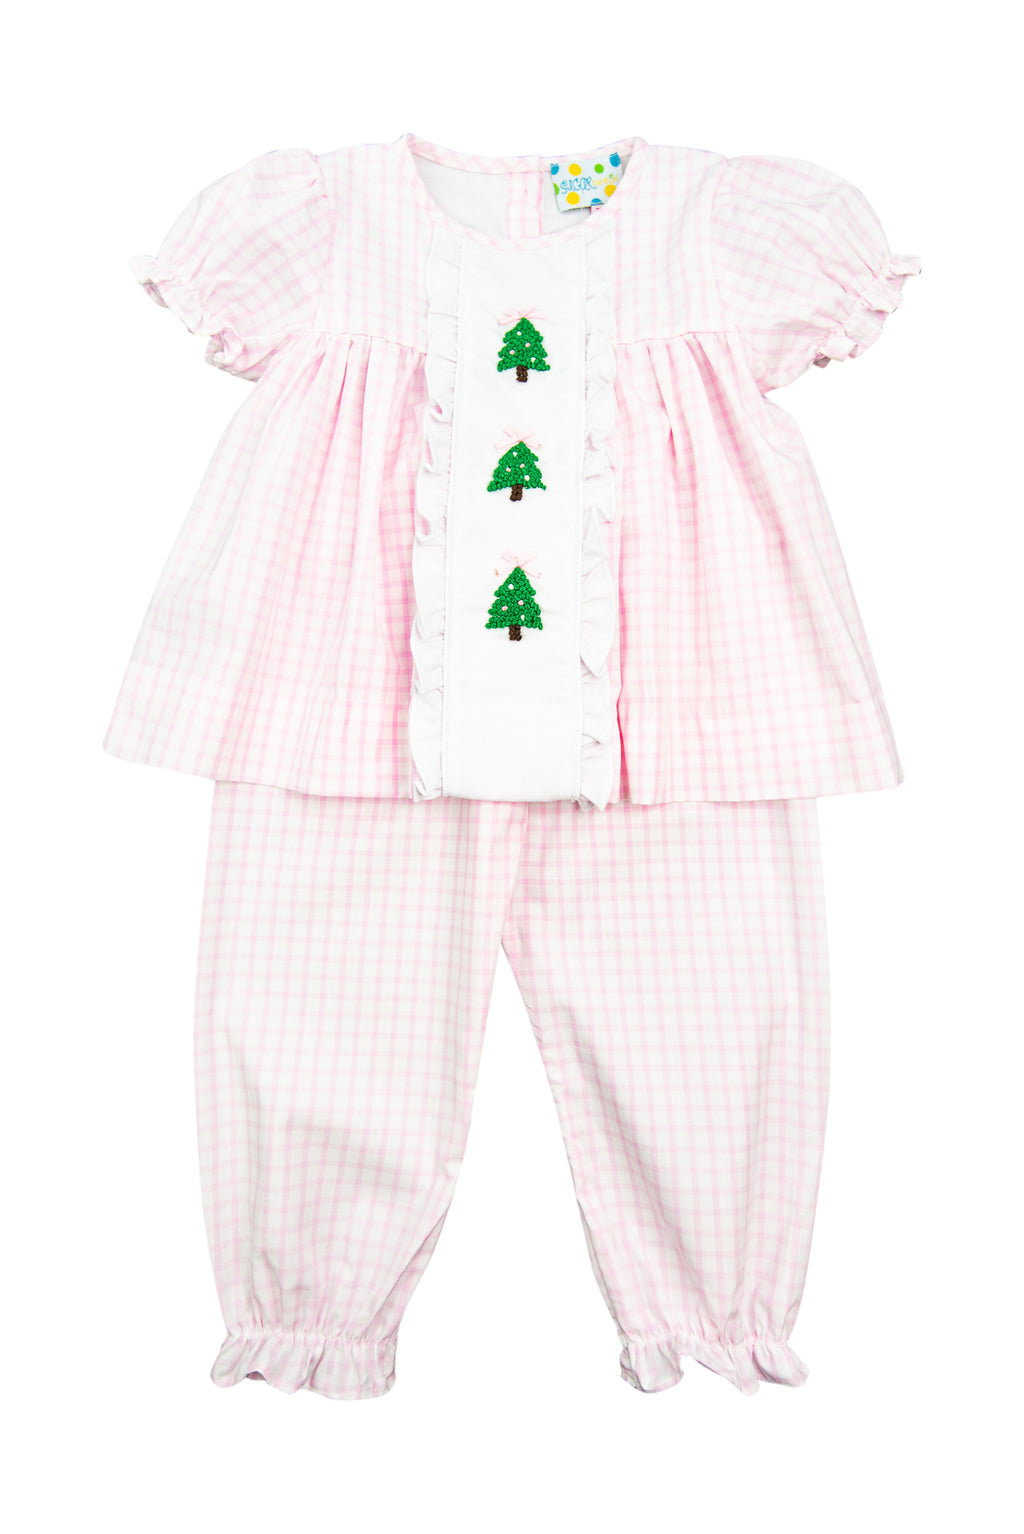 Girls French Knot Christmas Tree Pant Set